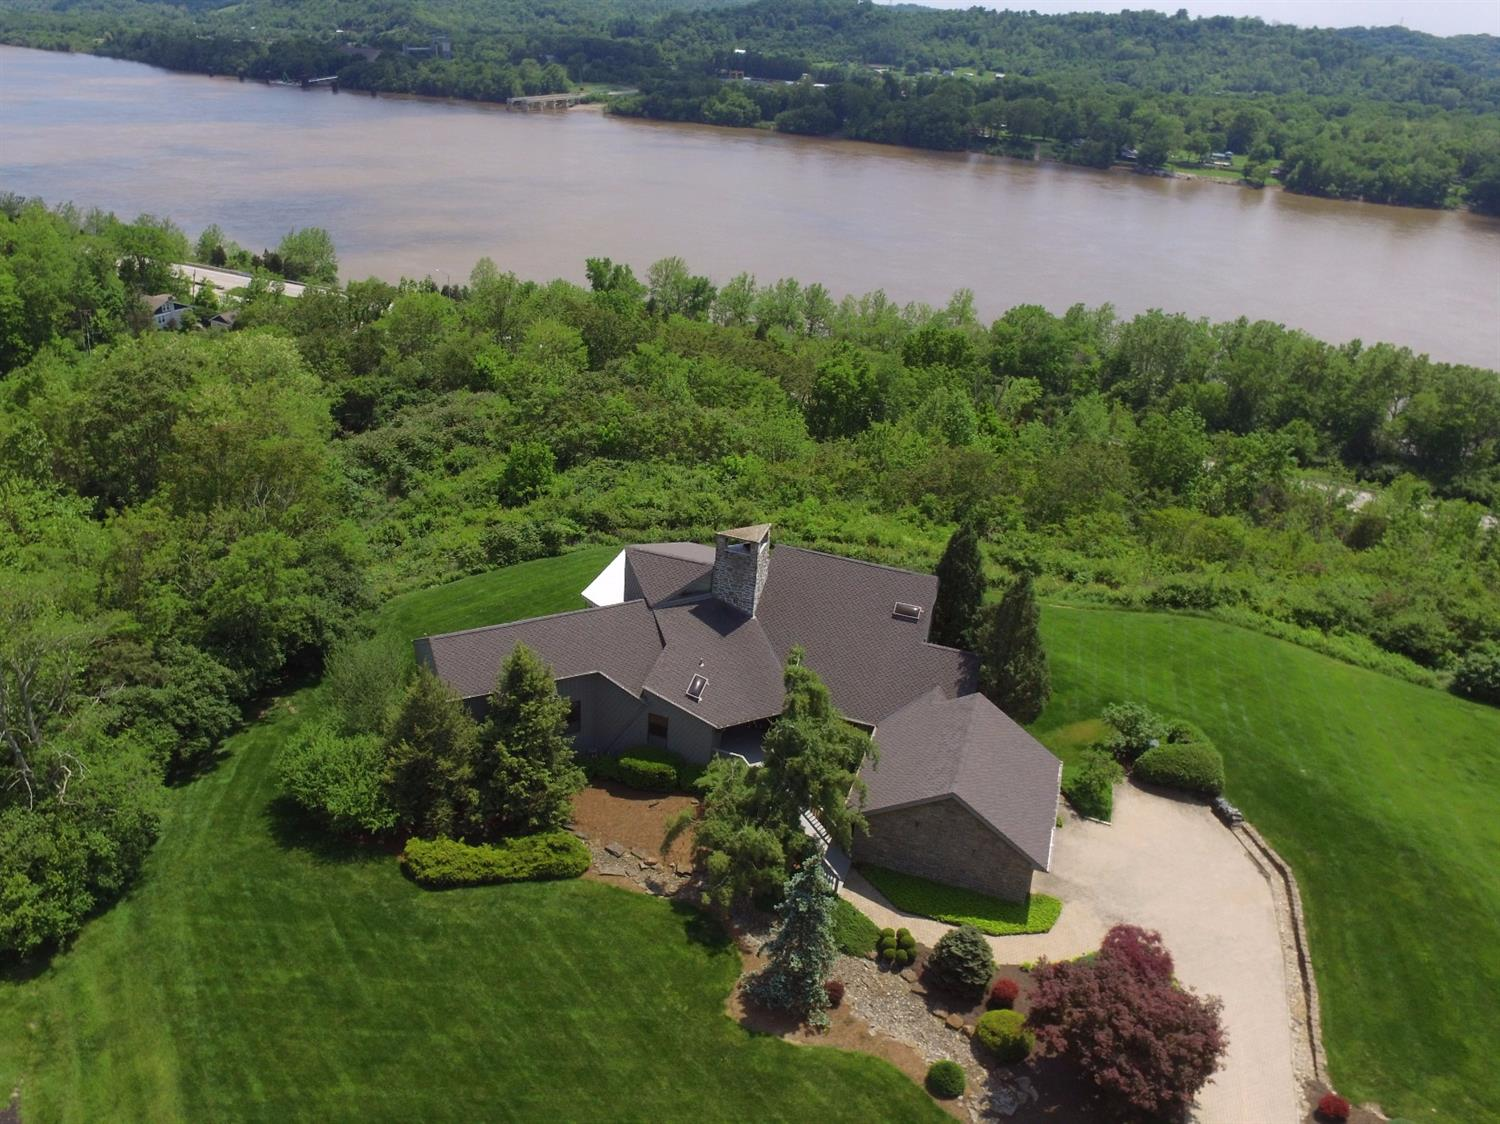 Panoramic river views from this breathtaking transitional home on amazingly private lawn - first floor master suite - soaring ceilings - stunning stone fireplace - finished lower level - approx 6,000 + sf on 3 levels - a rare opportunity!